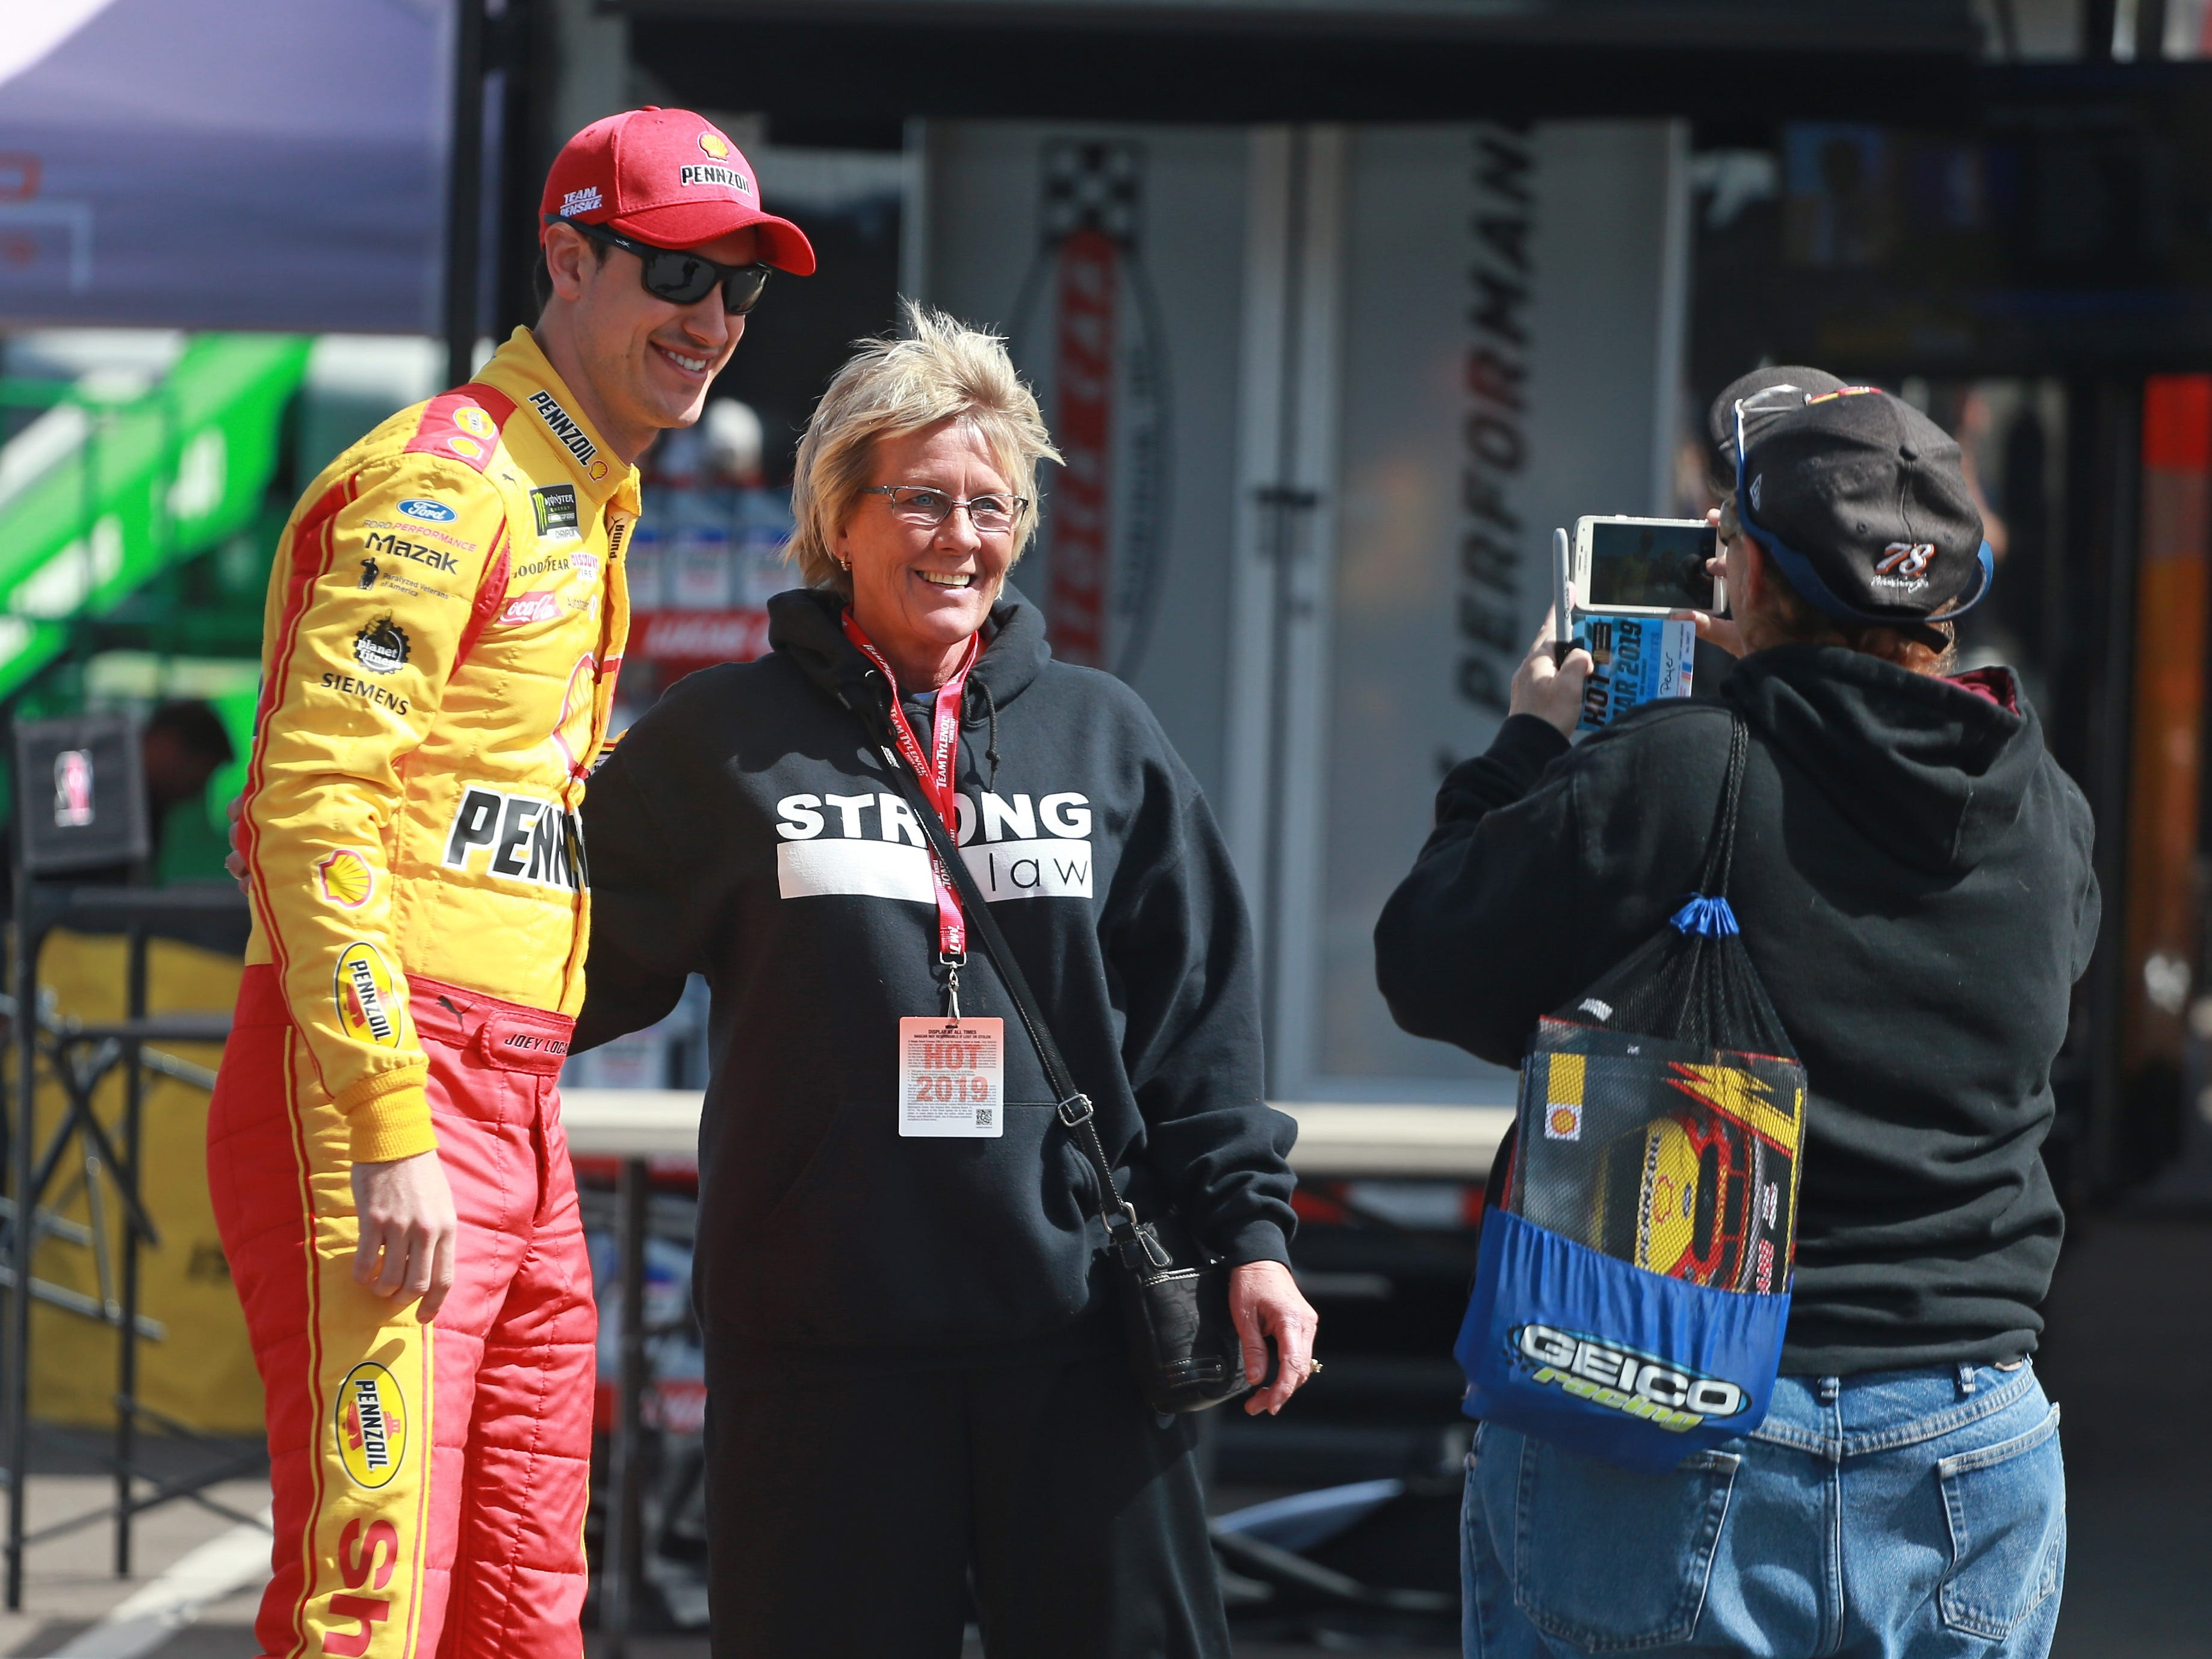 AVONDALE, AZ - MARCH 08:  Joey Logano, driver of the #22 Shell Pennzoil Ford, takes a photo during practice for the Monster Energy NASCAR Cup Series TicketGuardian 500 at ISM Raceway on March 8, 2019 in Avondale, Arizona.